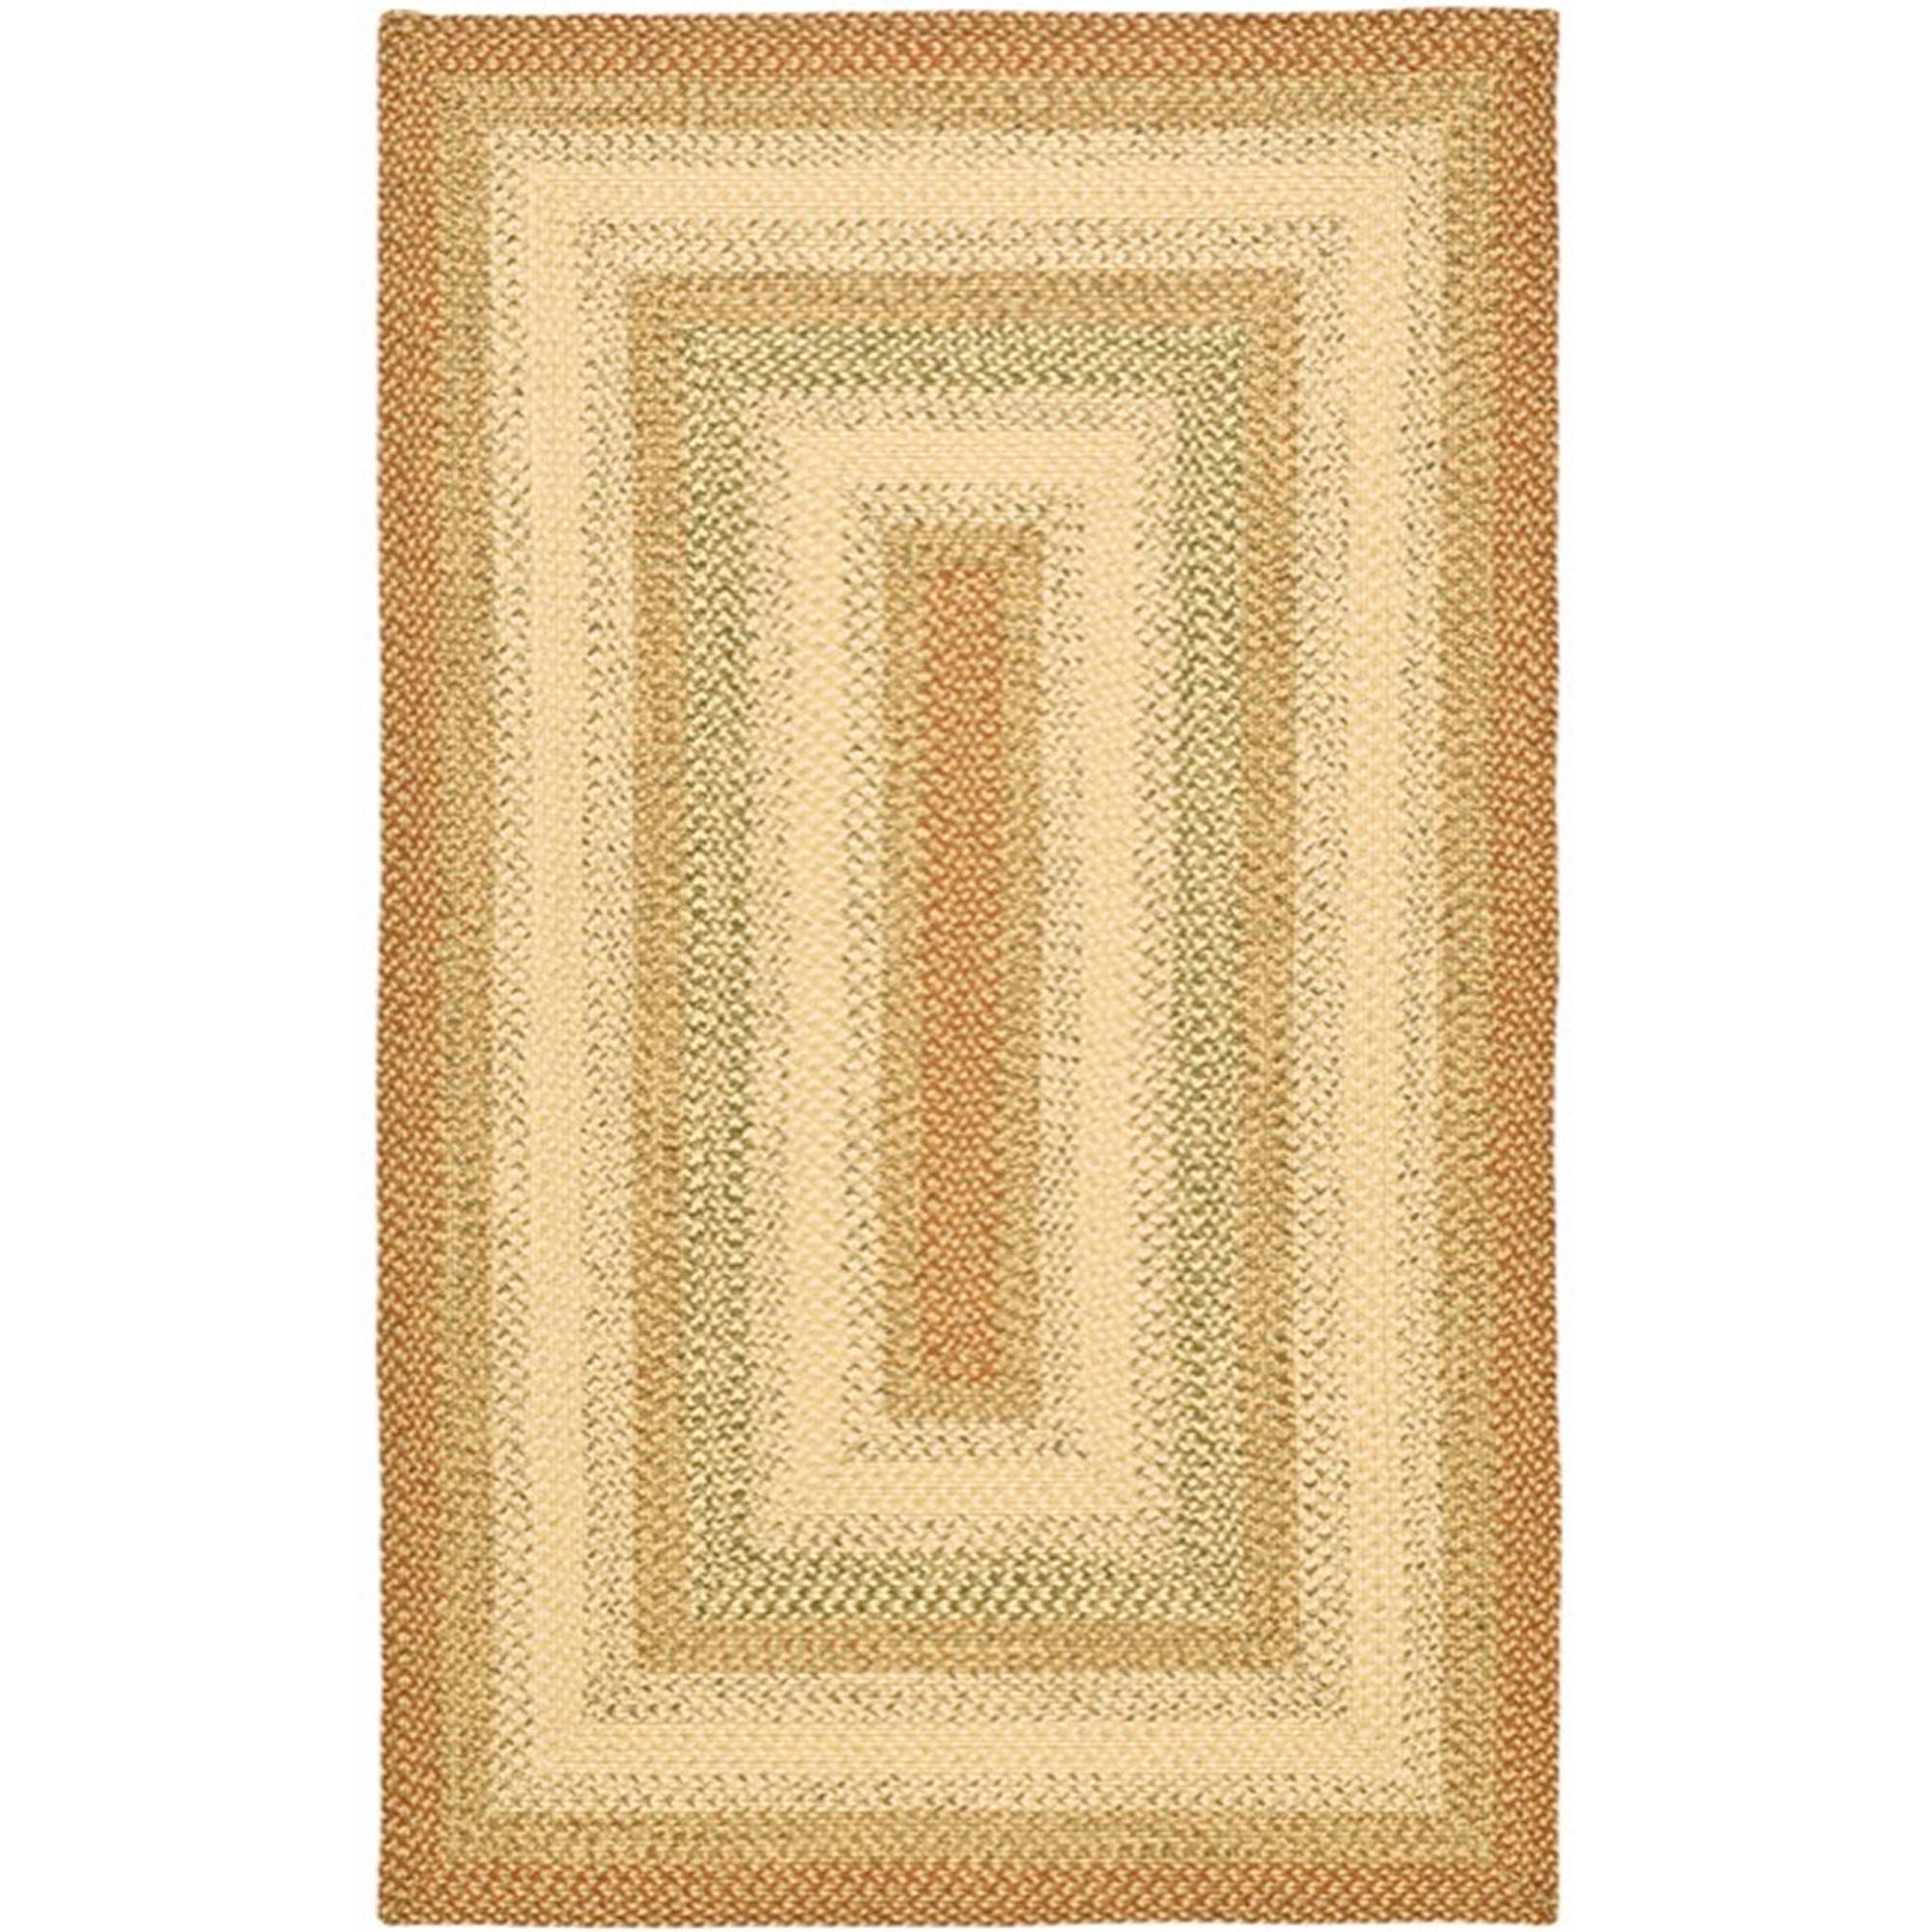 Safavieh Braided Matthew Bordered Area Rug or Runner